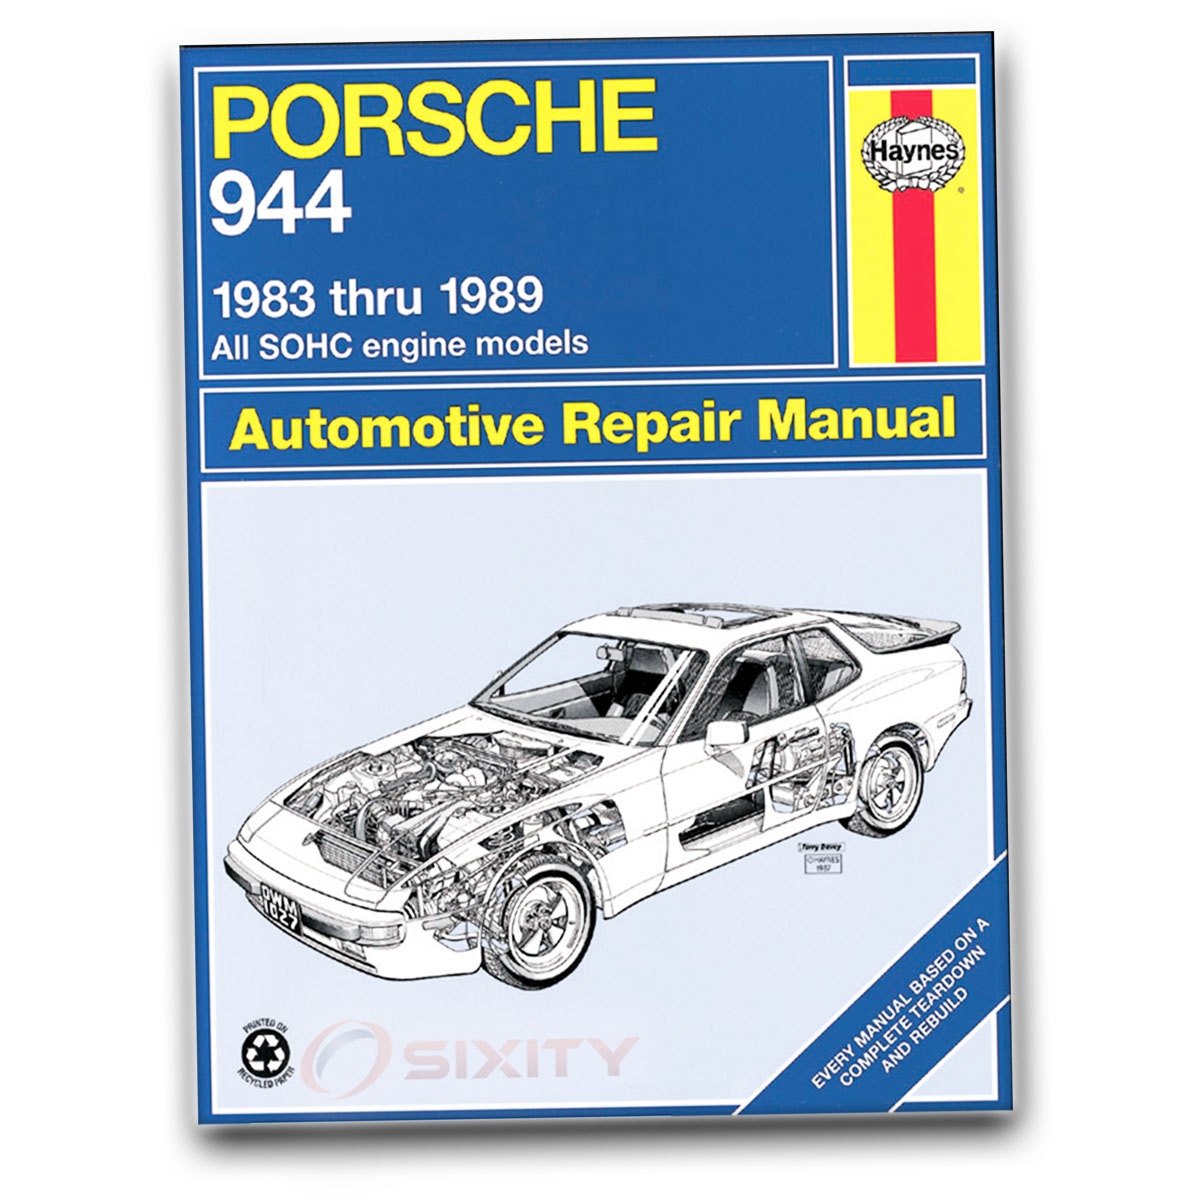 haynes porsche 924s 944 83 89 repair manual 80035 shop service rh ebay com haynes manual porsche 924 pdf haynes manual porsche 924